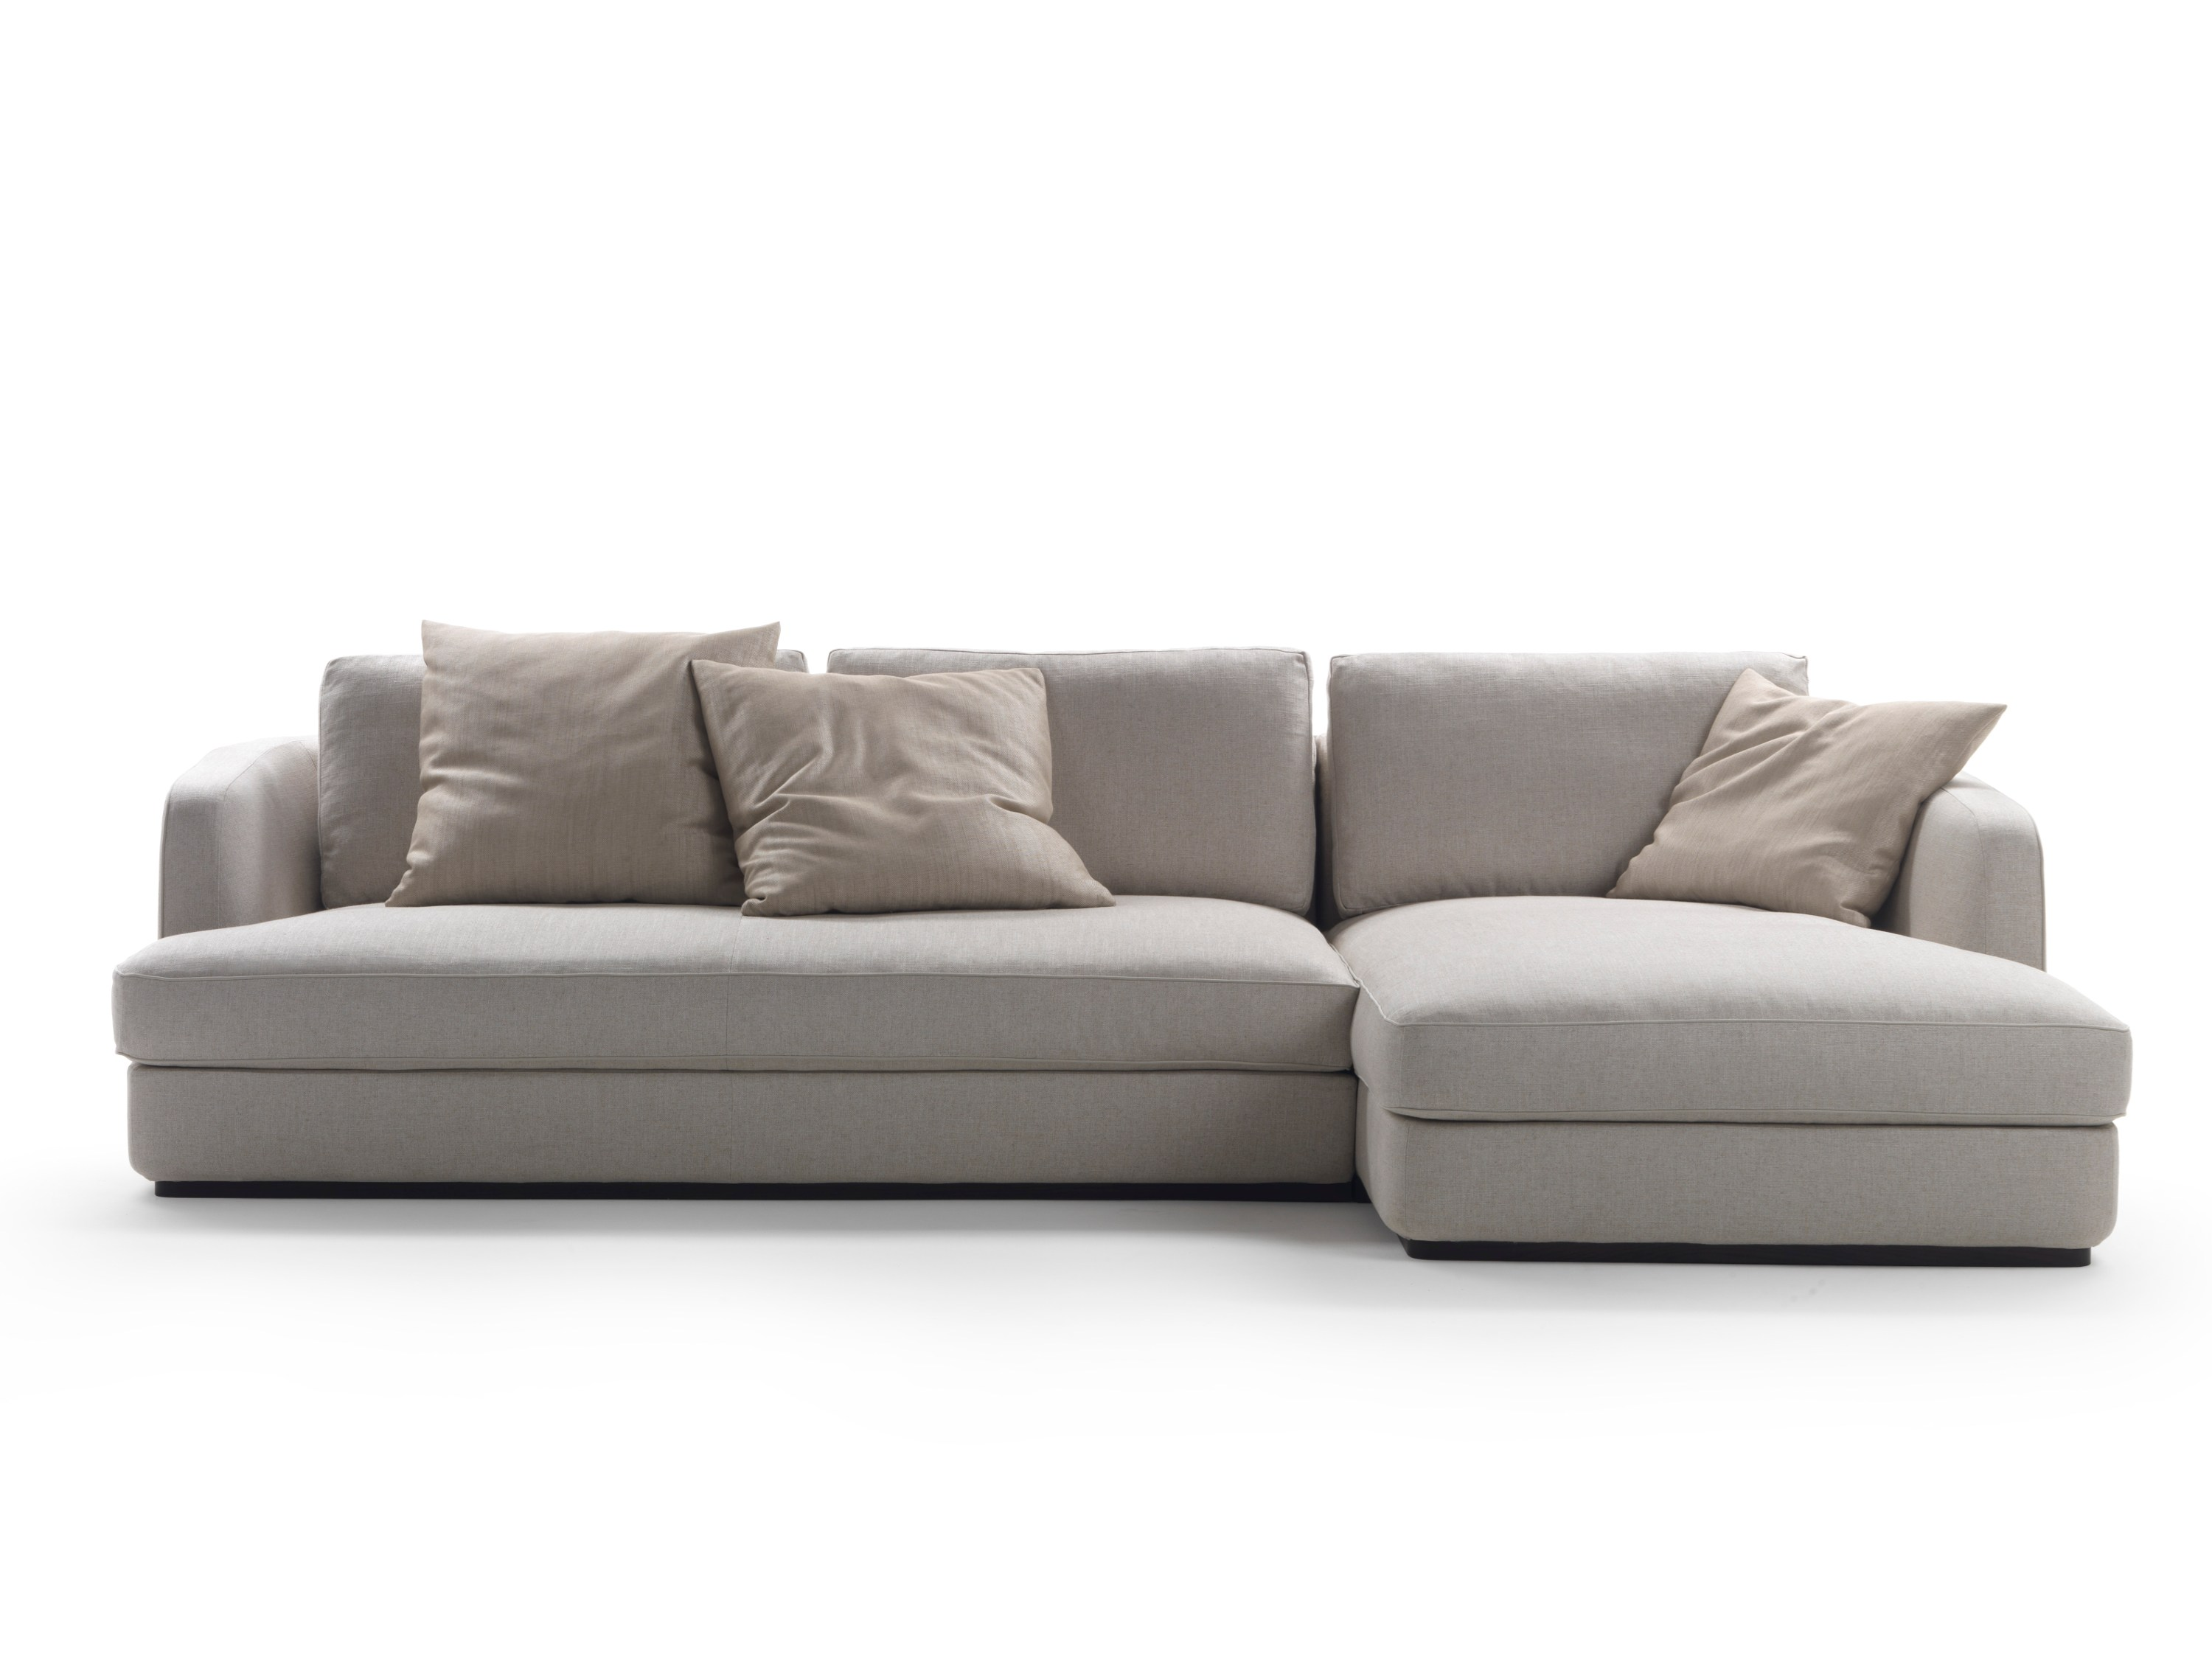 Sofa with chaise longue barret by mood by flexform design for Chaise longue flexform